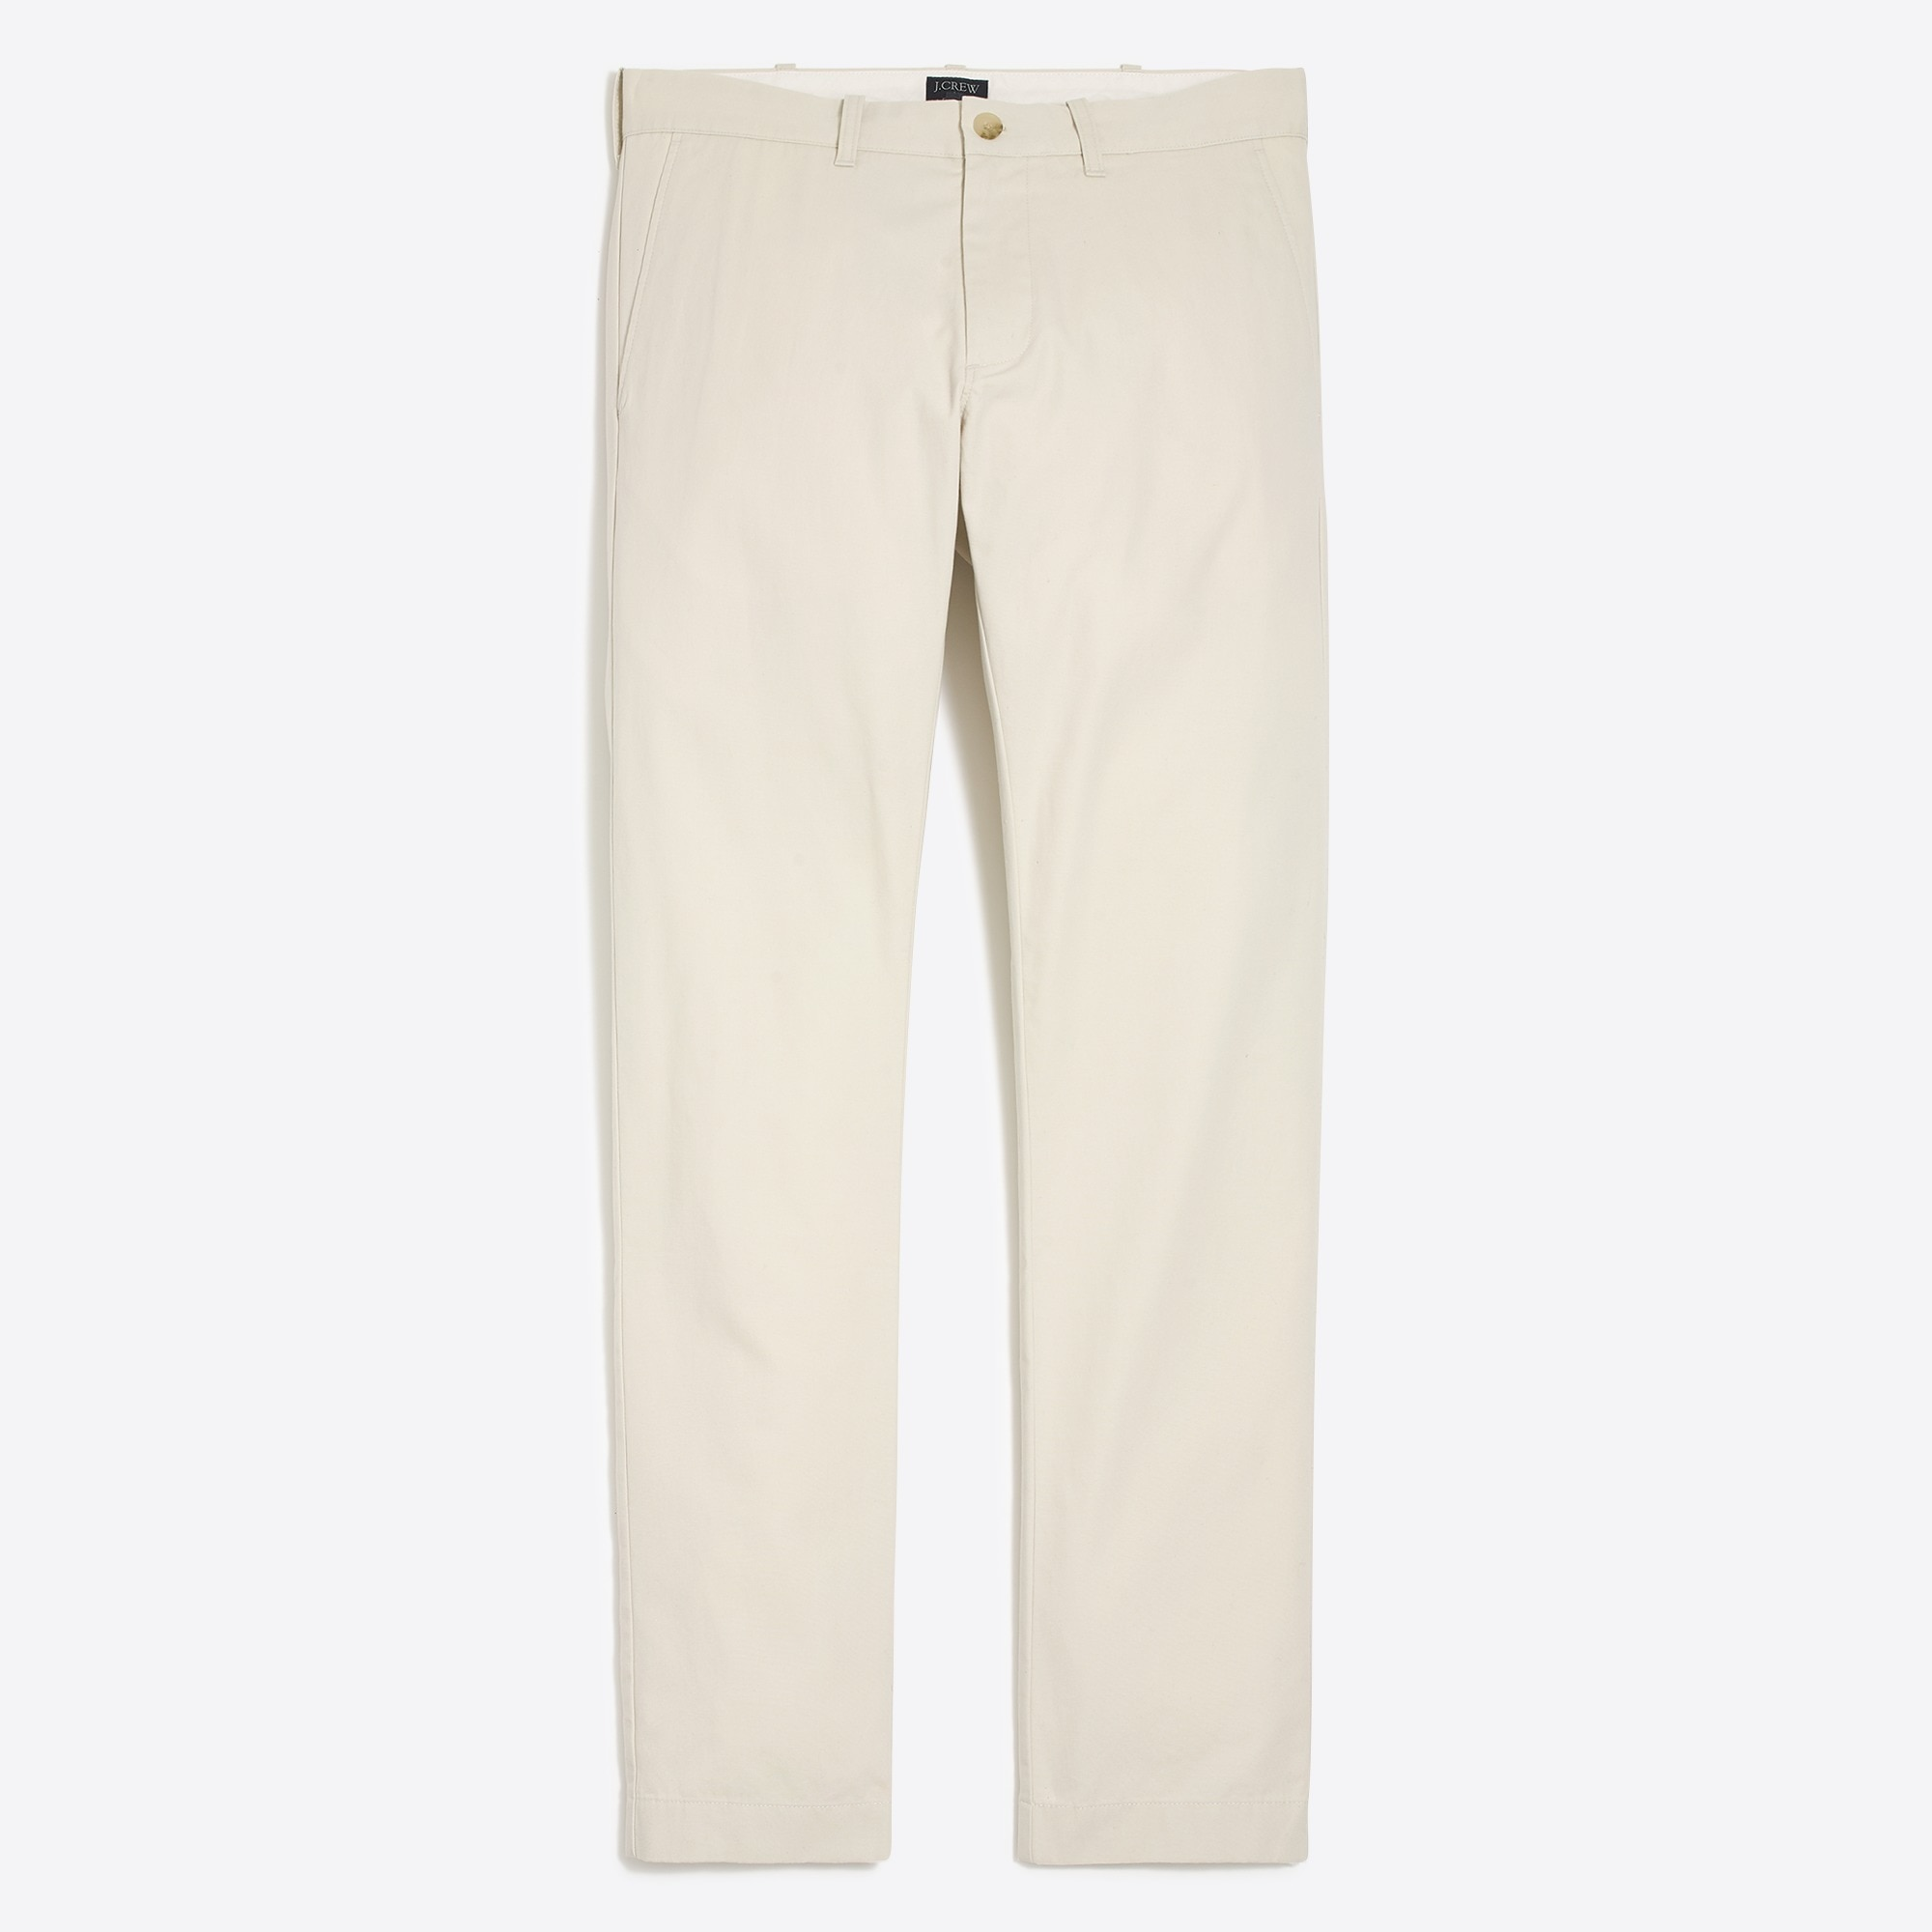 Driggs slim-fit lightweight chino factorymen pants c